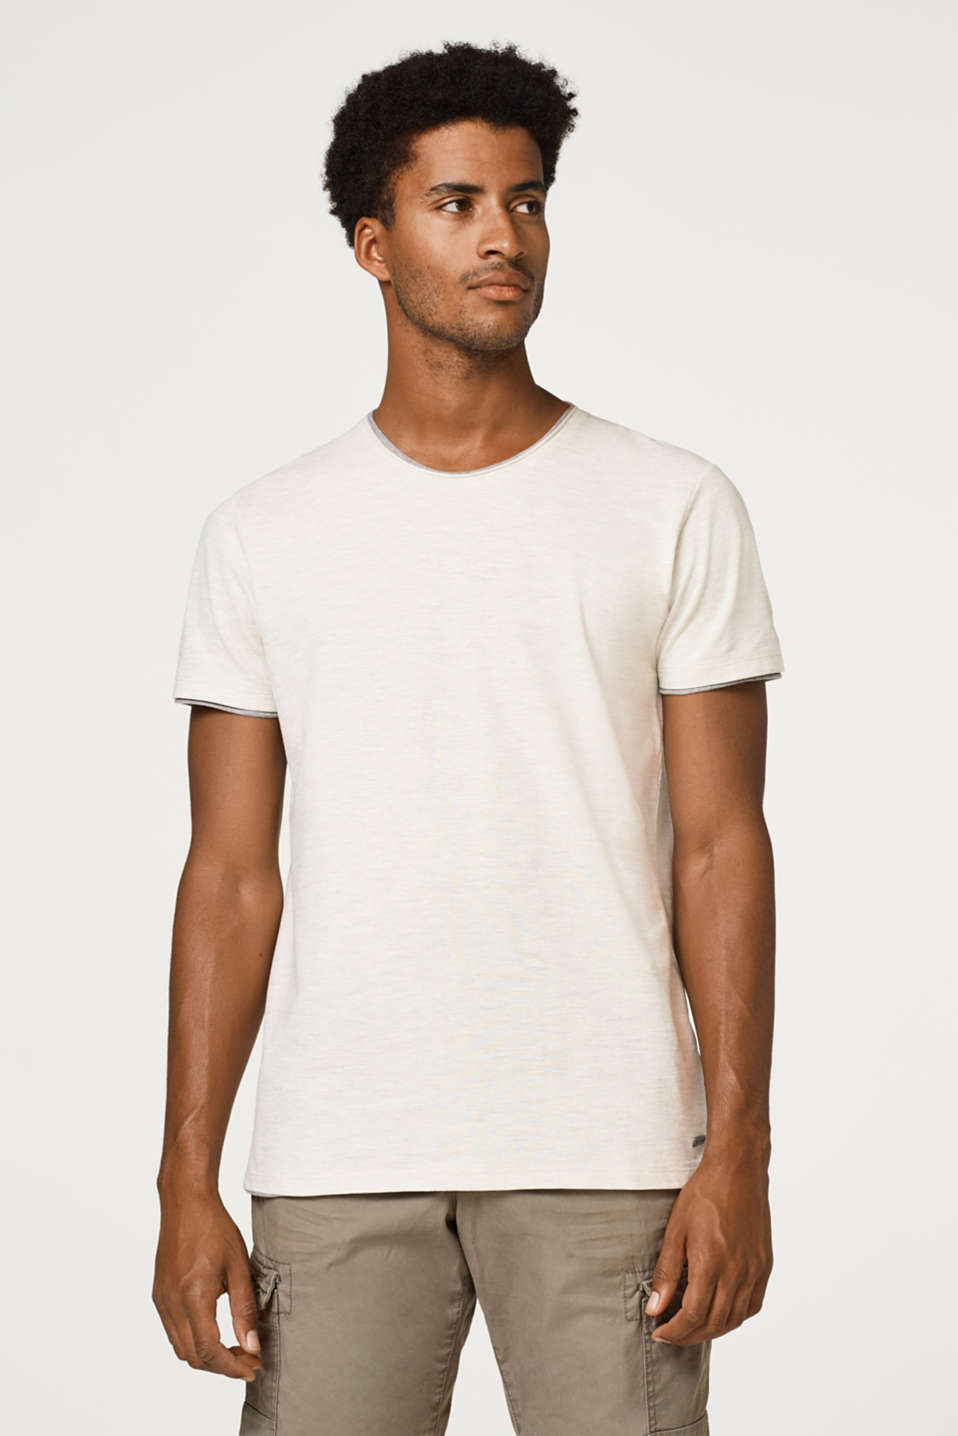 edc - Piqué t-shirt with a layered effect, made of blended cotton